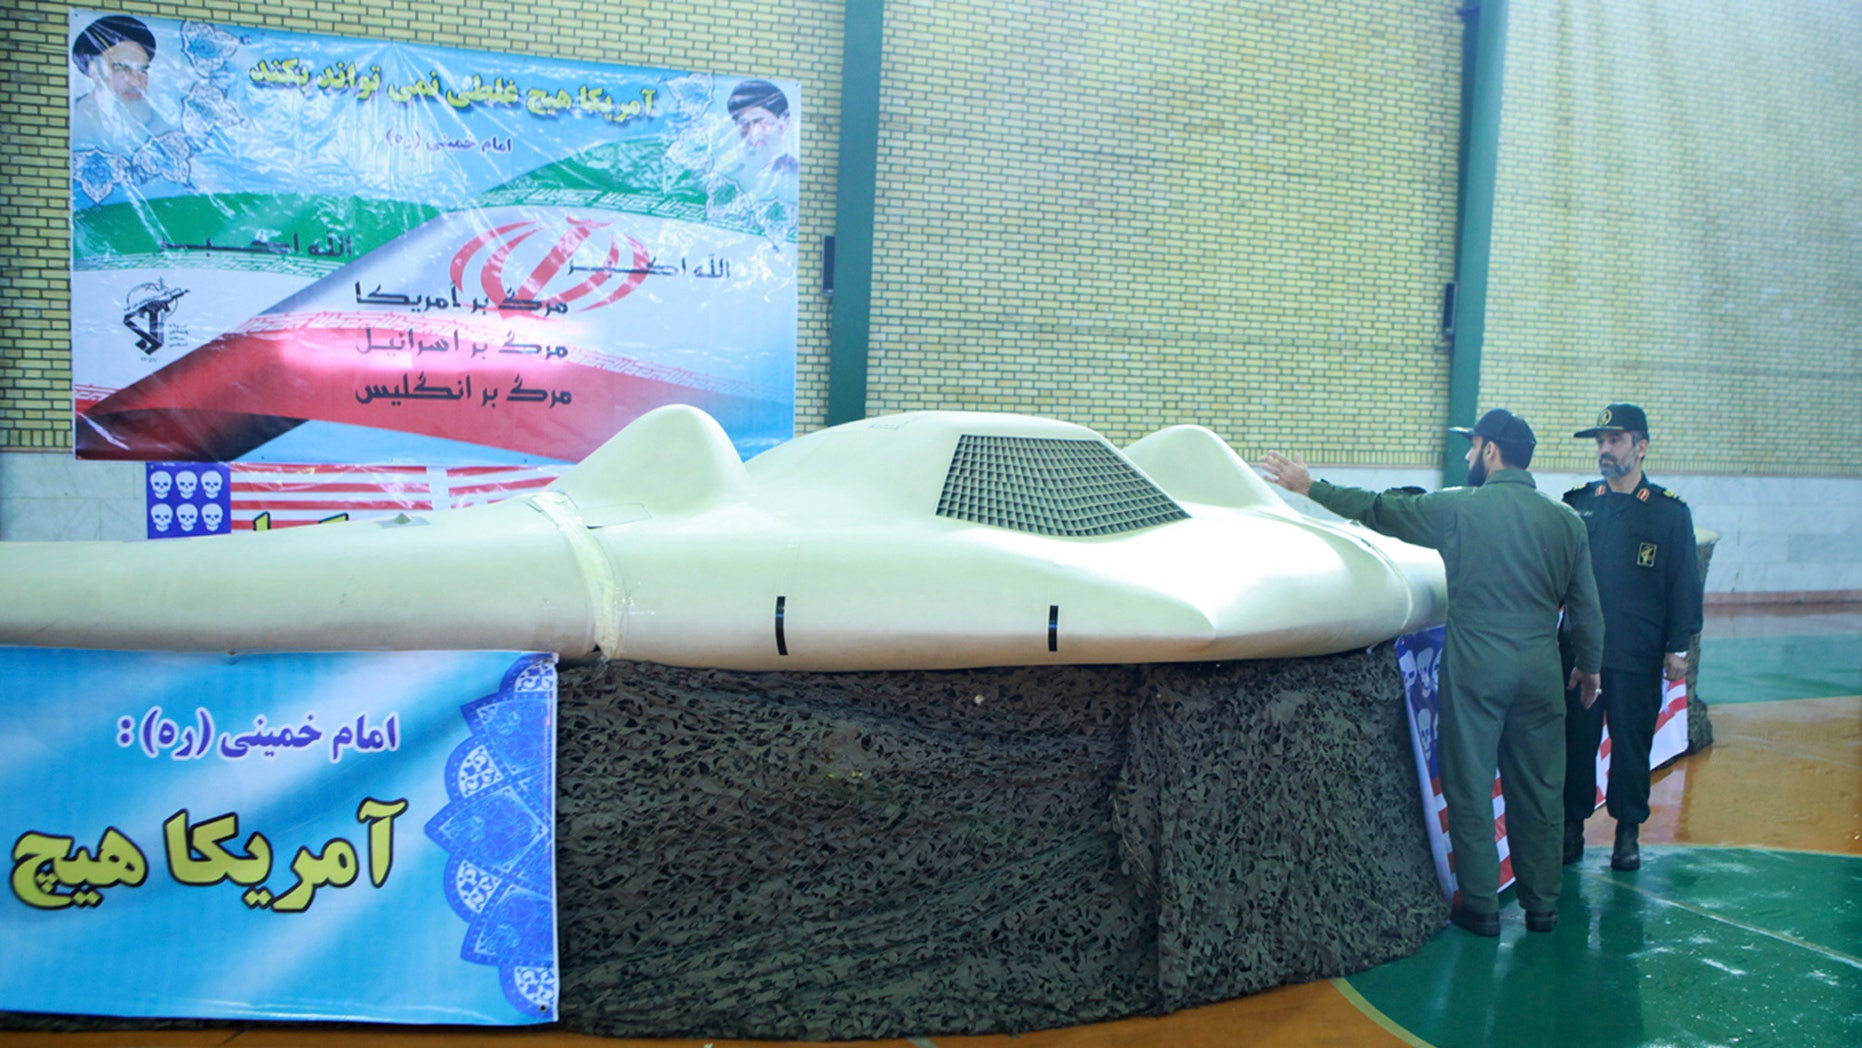 Dec. 8, 2011: This file photo released by the Iranian Revolutionary Guards, claims to show US RQ-170 Sentinel drone which Tehran says its forces downed earlier this week, as the chief of the aerospace division of Iran'ss Revolutionary Guards, Gen. Amir Ali Hajizadeh, right, listens to an unidentified colonel, in an undisclosed location, Iran.